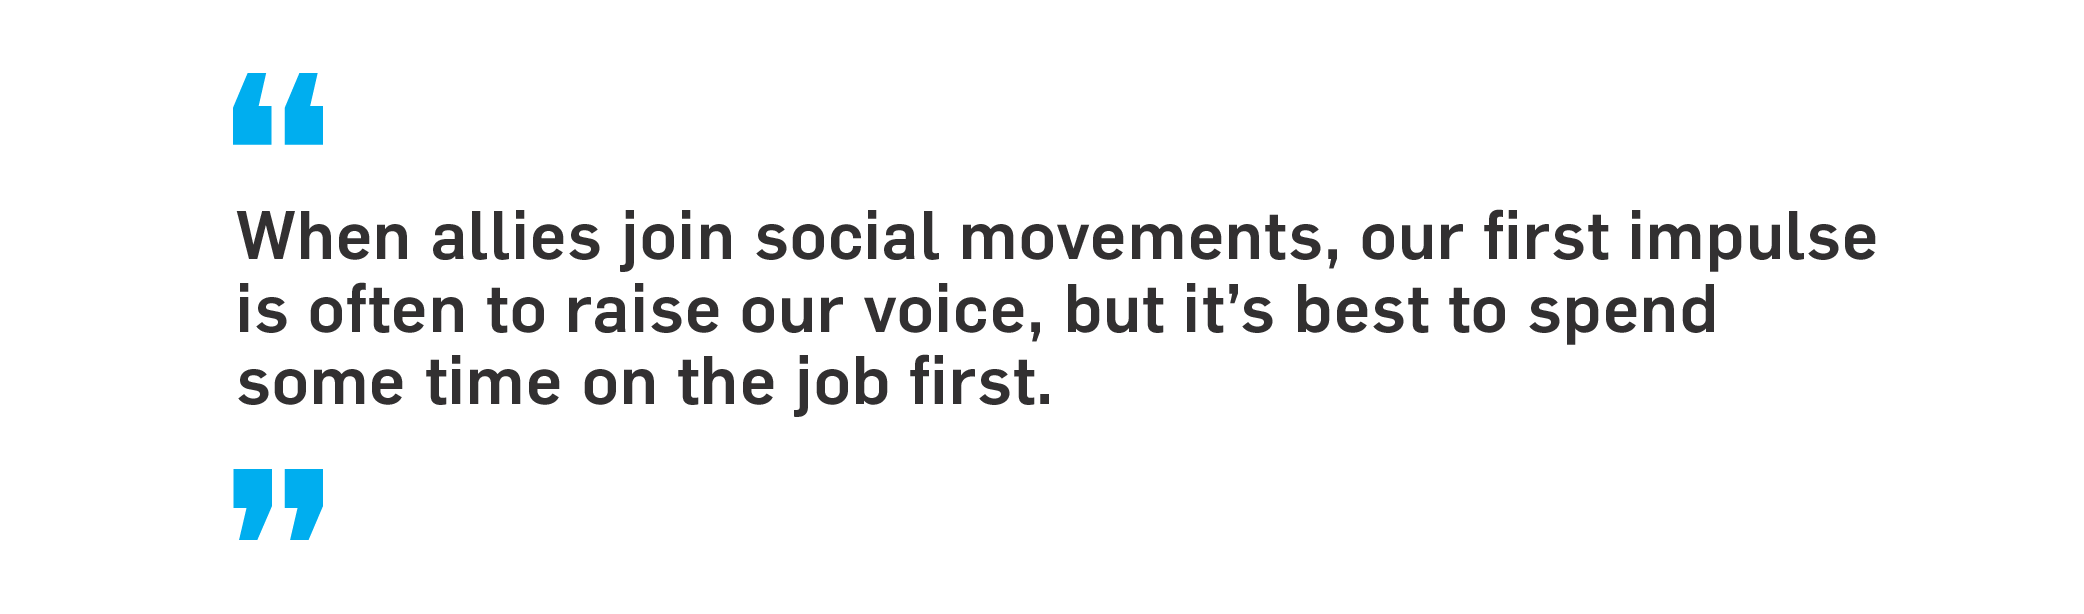 When allies join social movements, our first impulse is often to raise our voice, but it's best to spend some time on the job first.